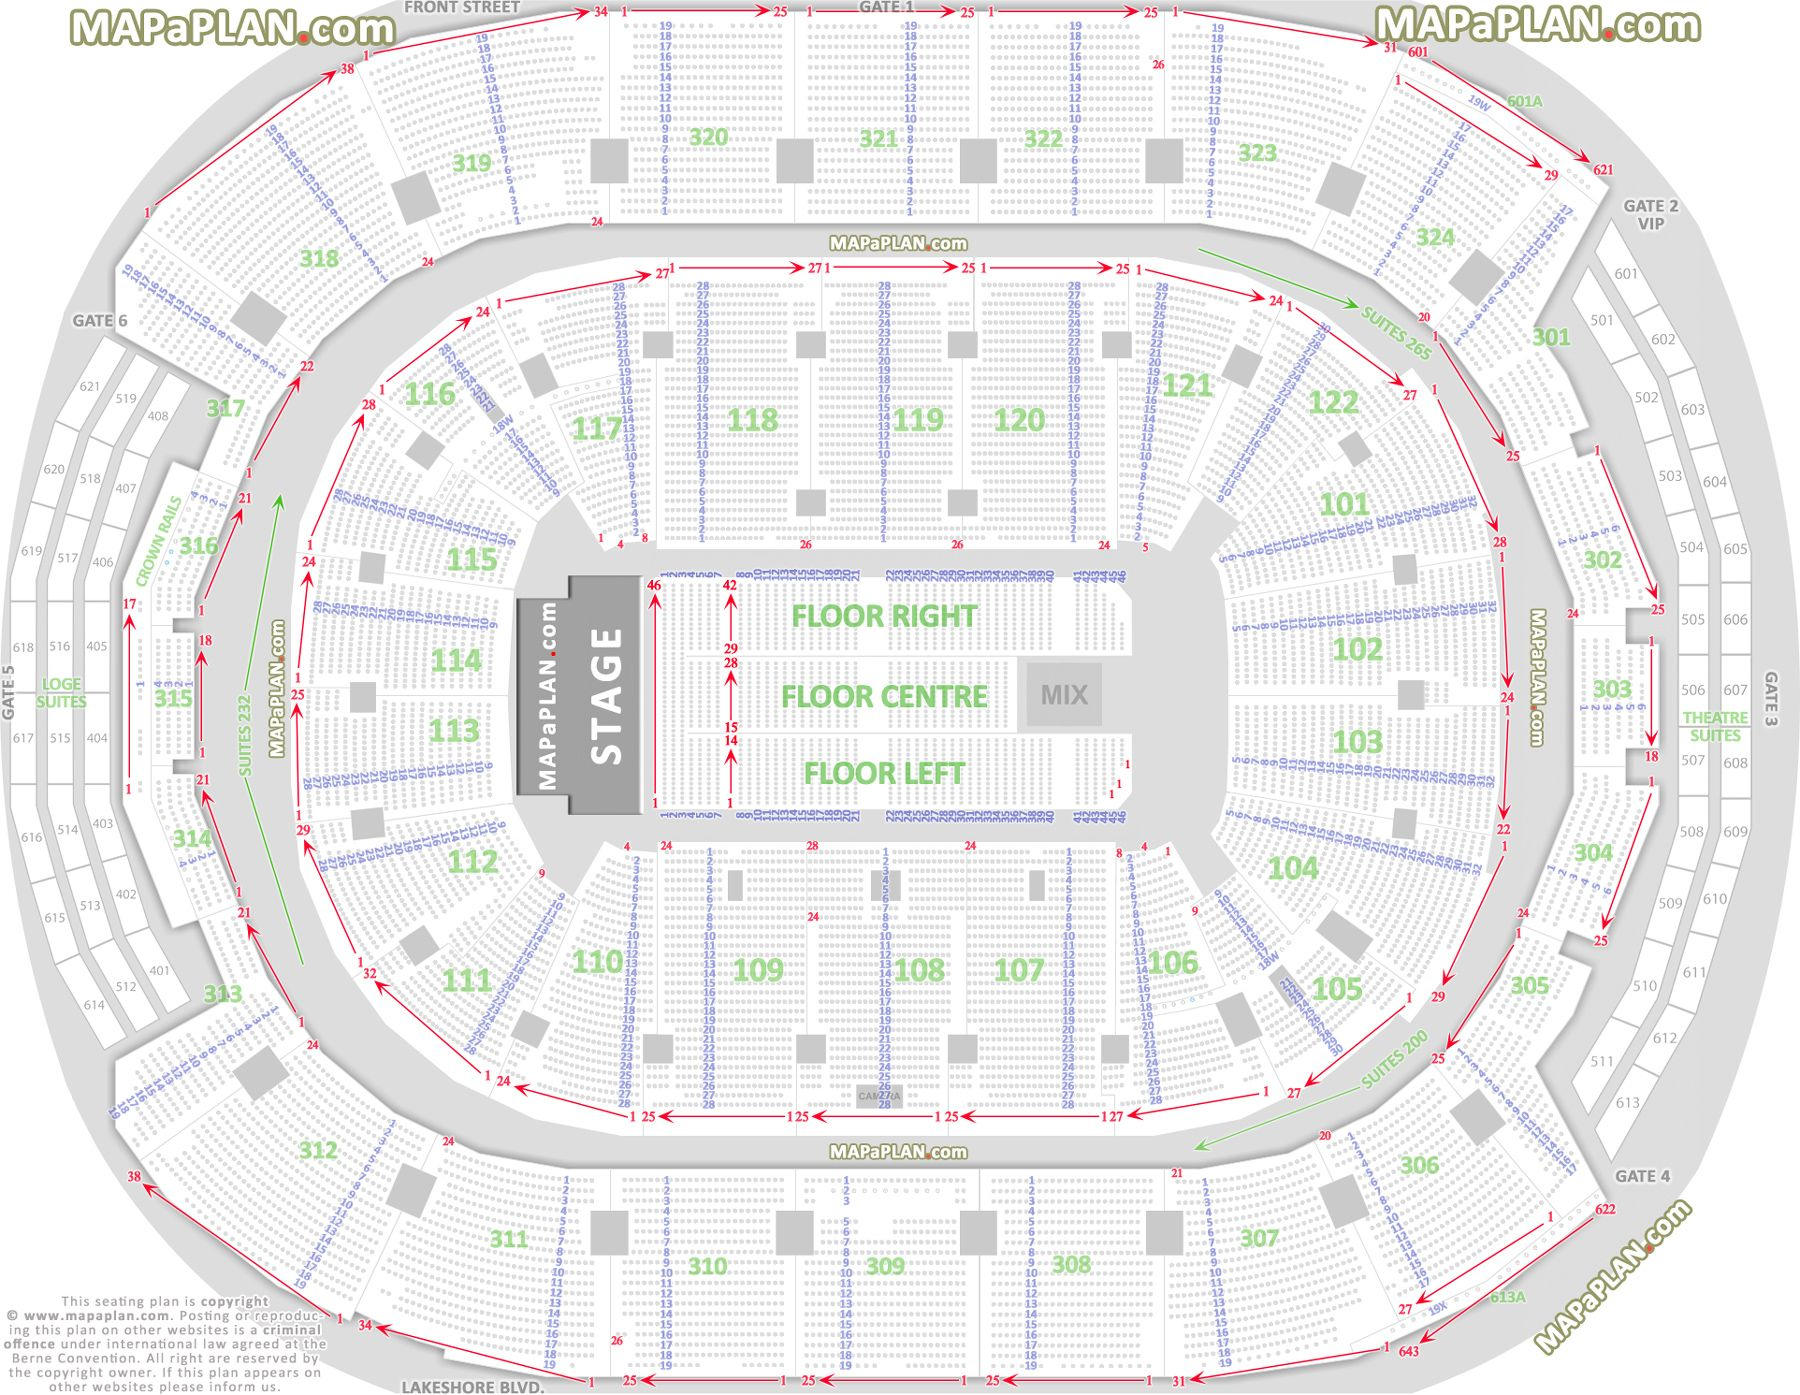 Toronto Air Canada Centre Detailed seat & row numbers